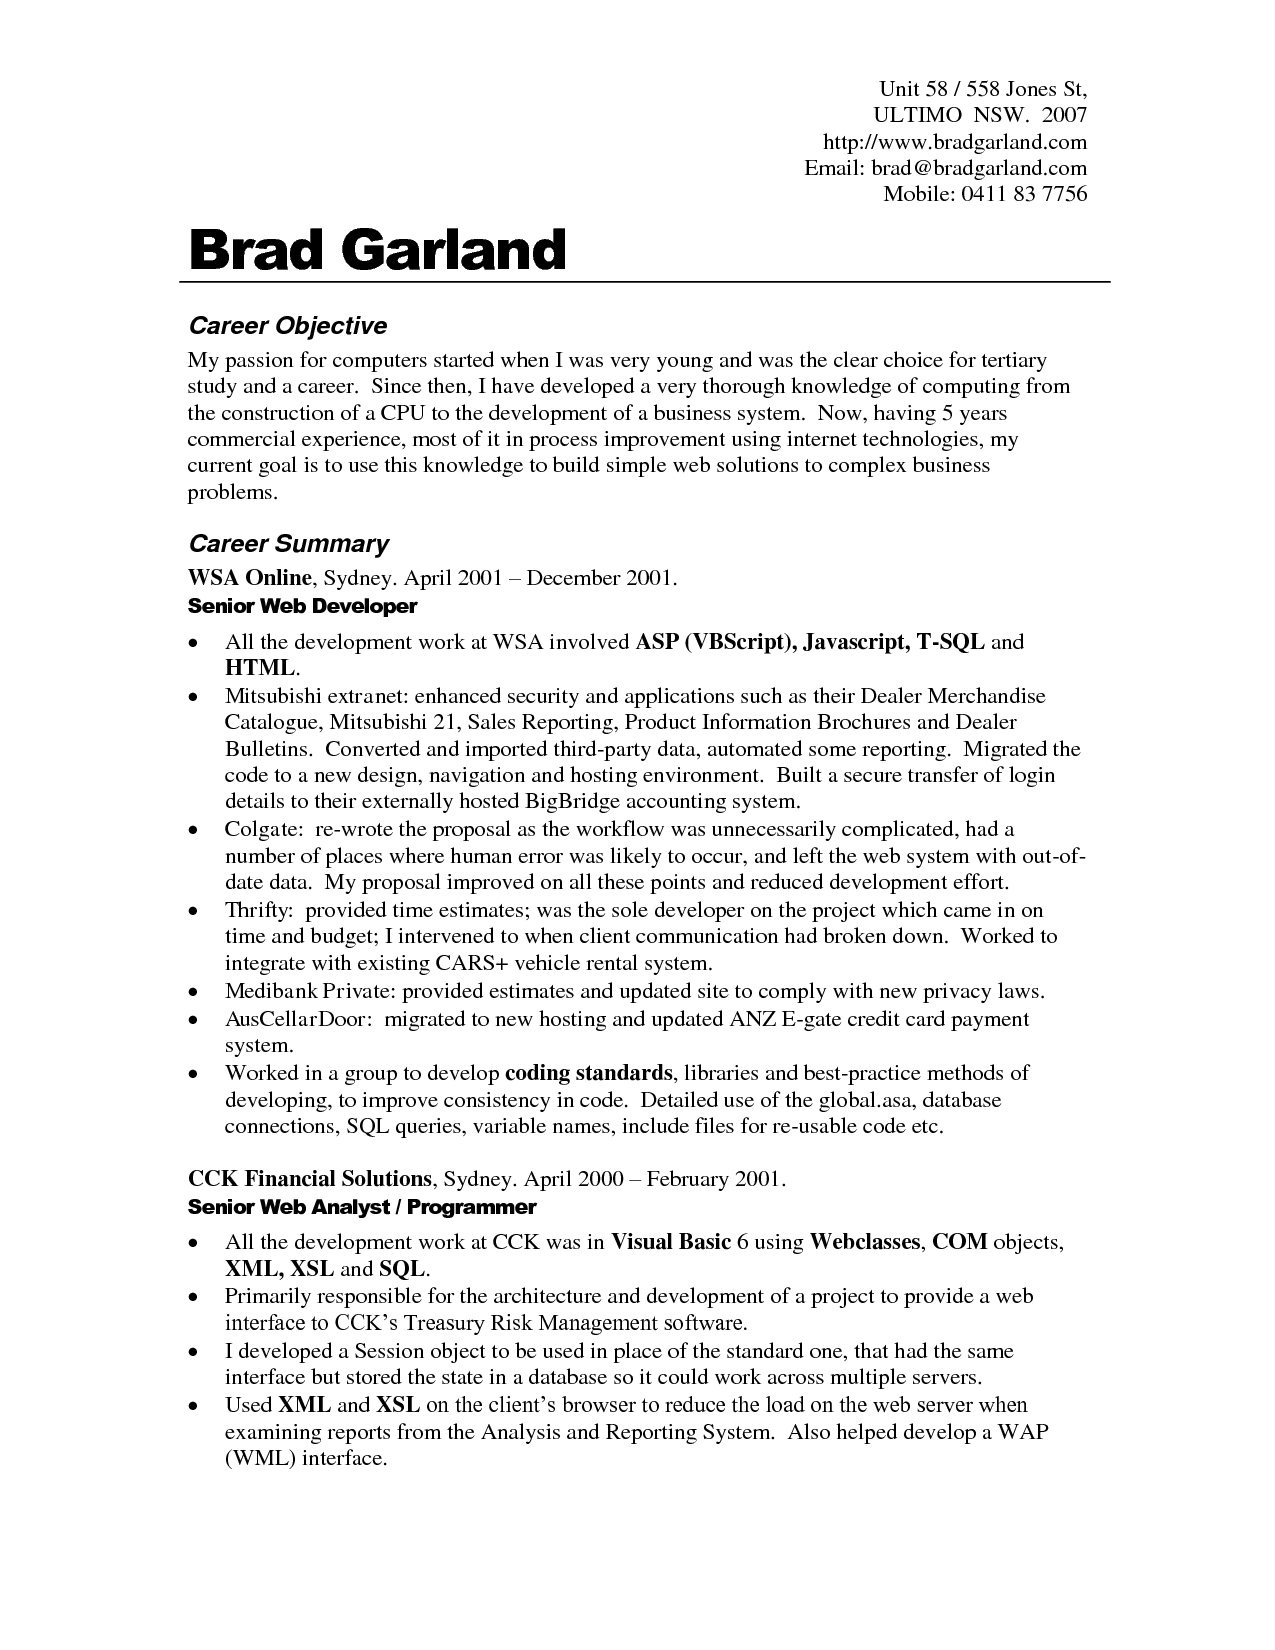 Best Resume Objectives Resume Objectives Examples Best Templateresume Objective Examples